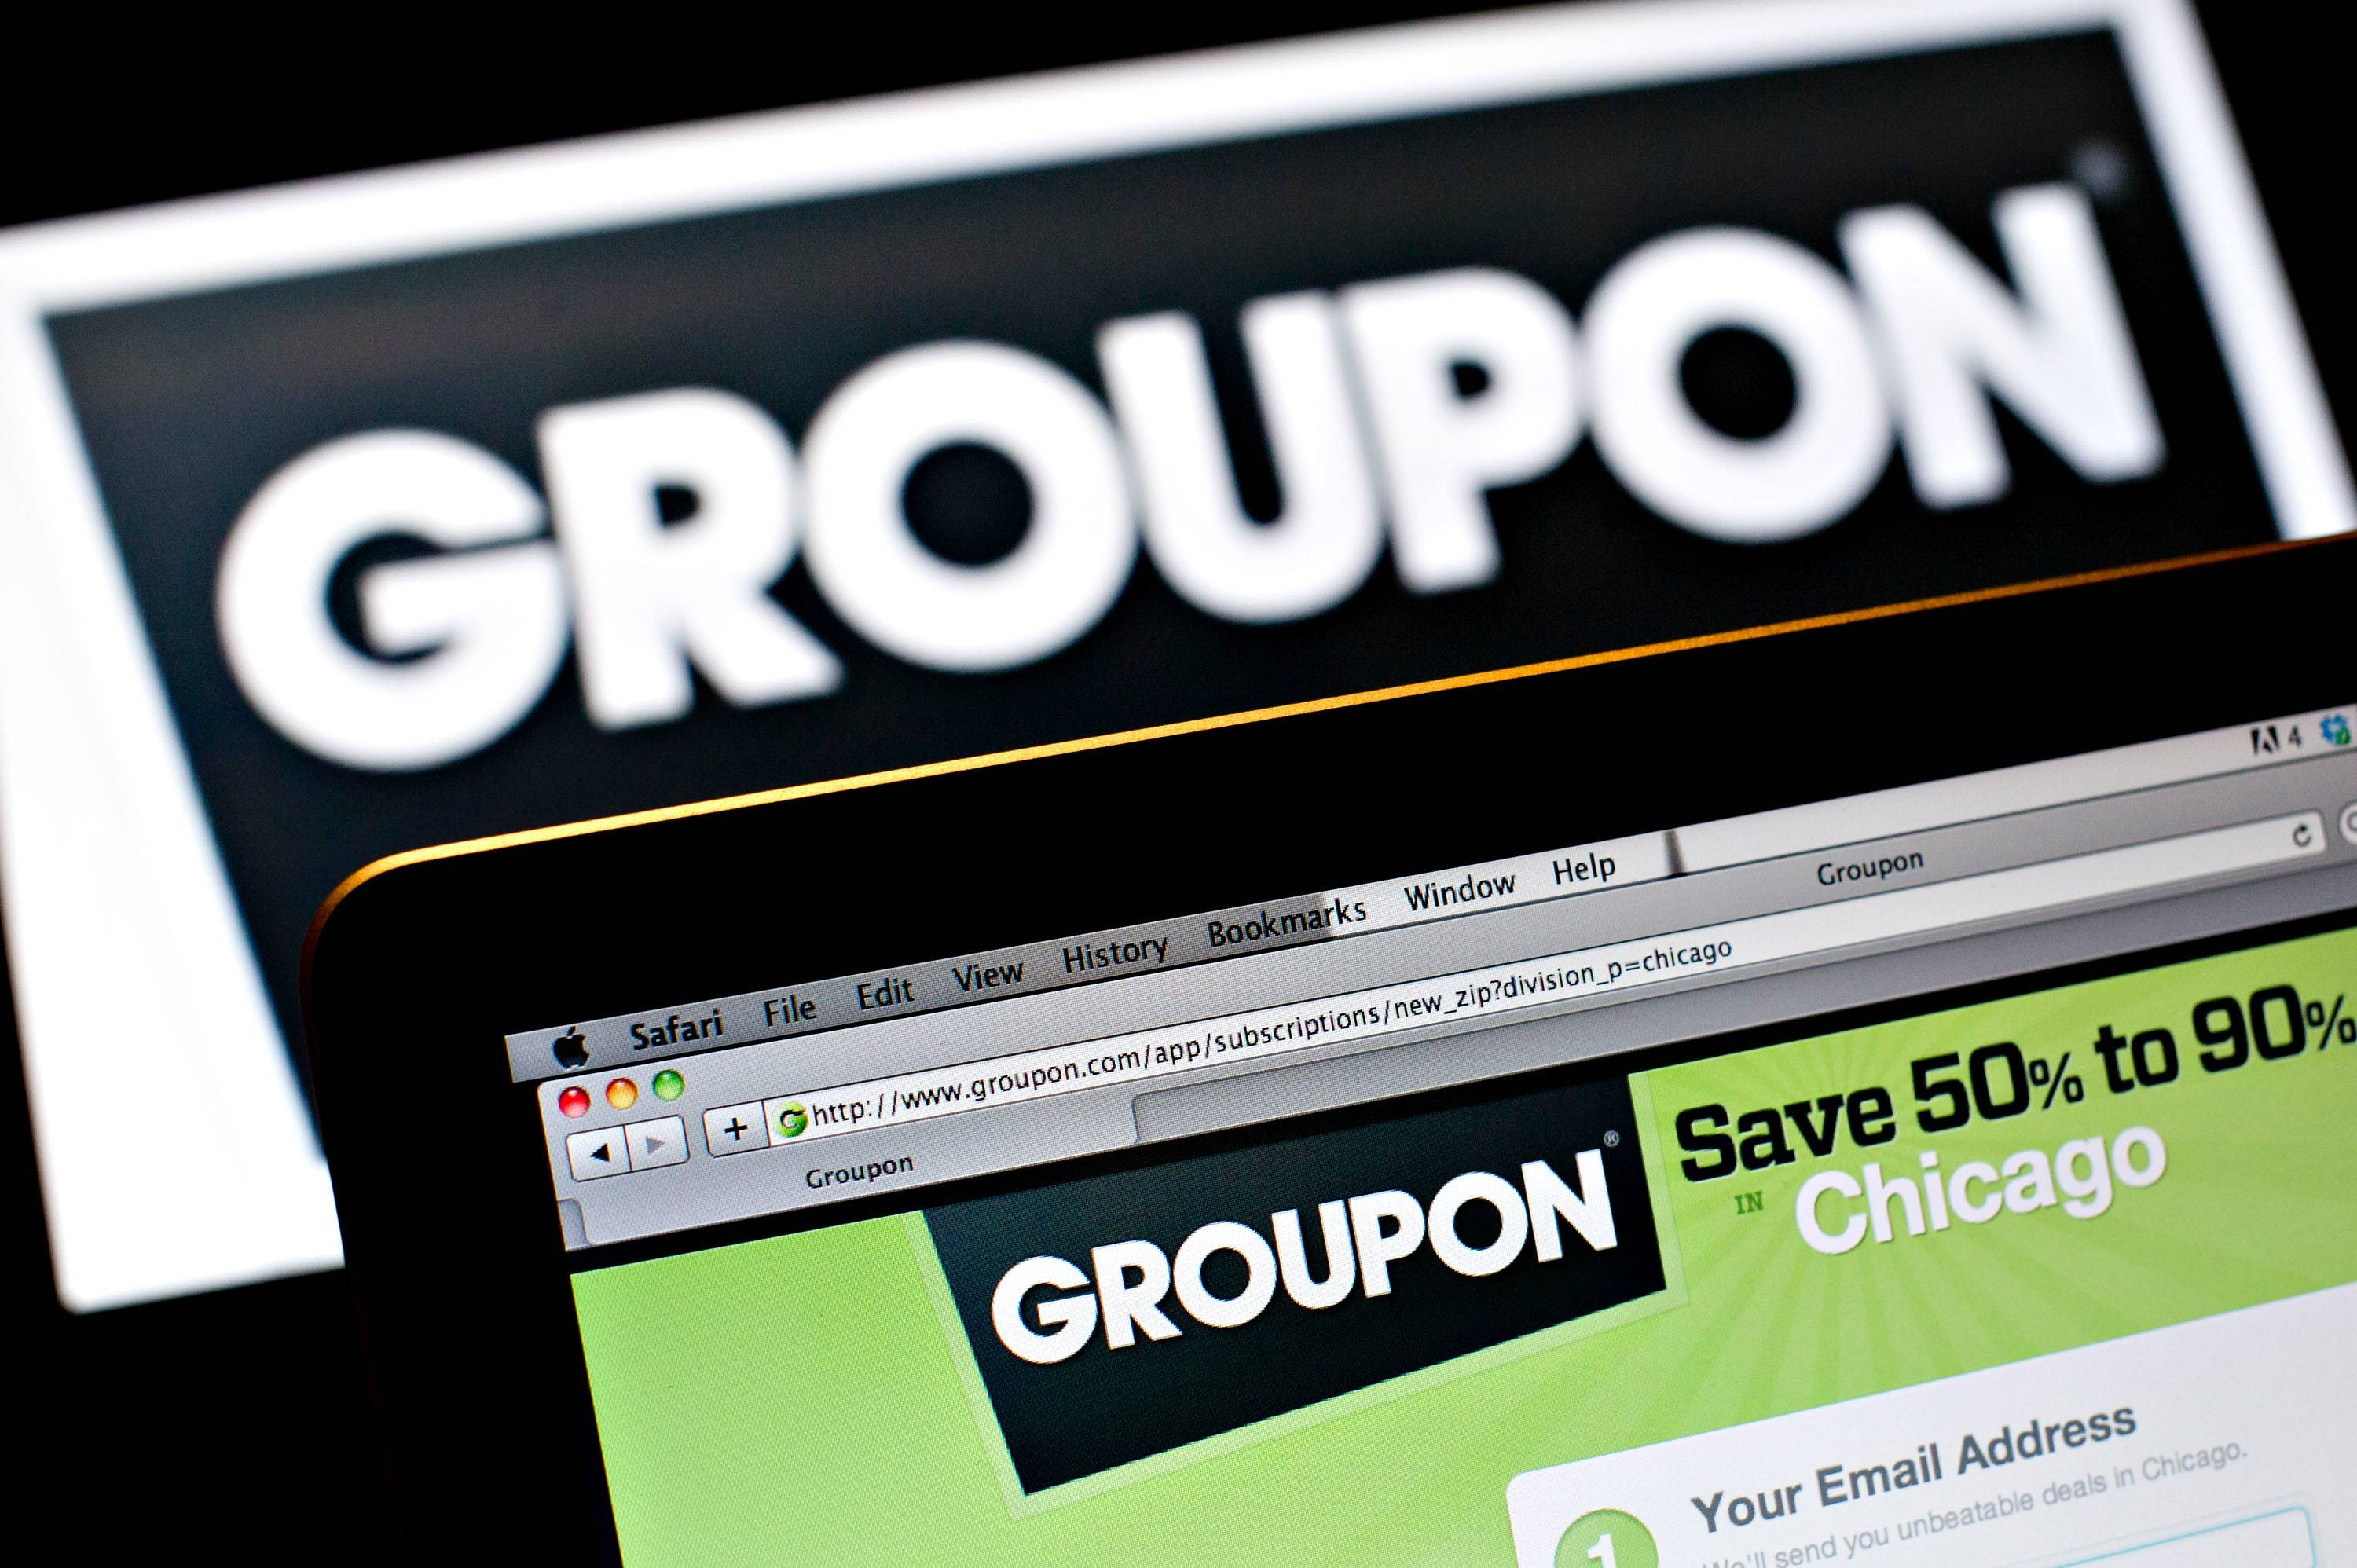 Groupon Inc.'s transition from daily- deal e-mails to e-commerce retail is hitting bumps along the way.